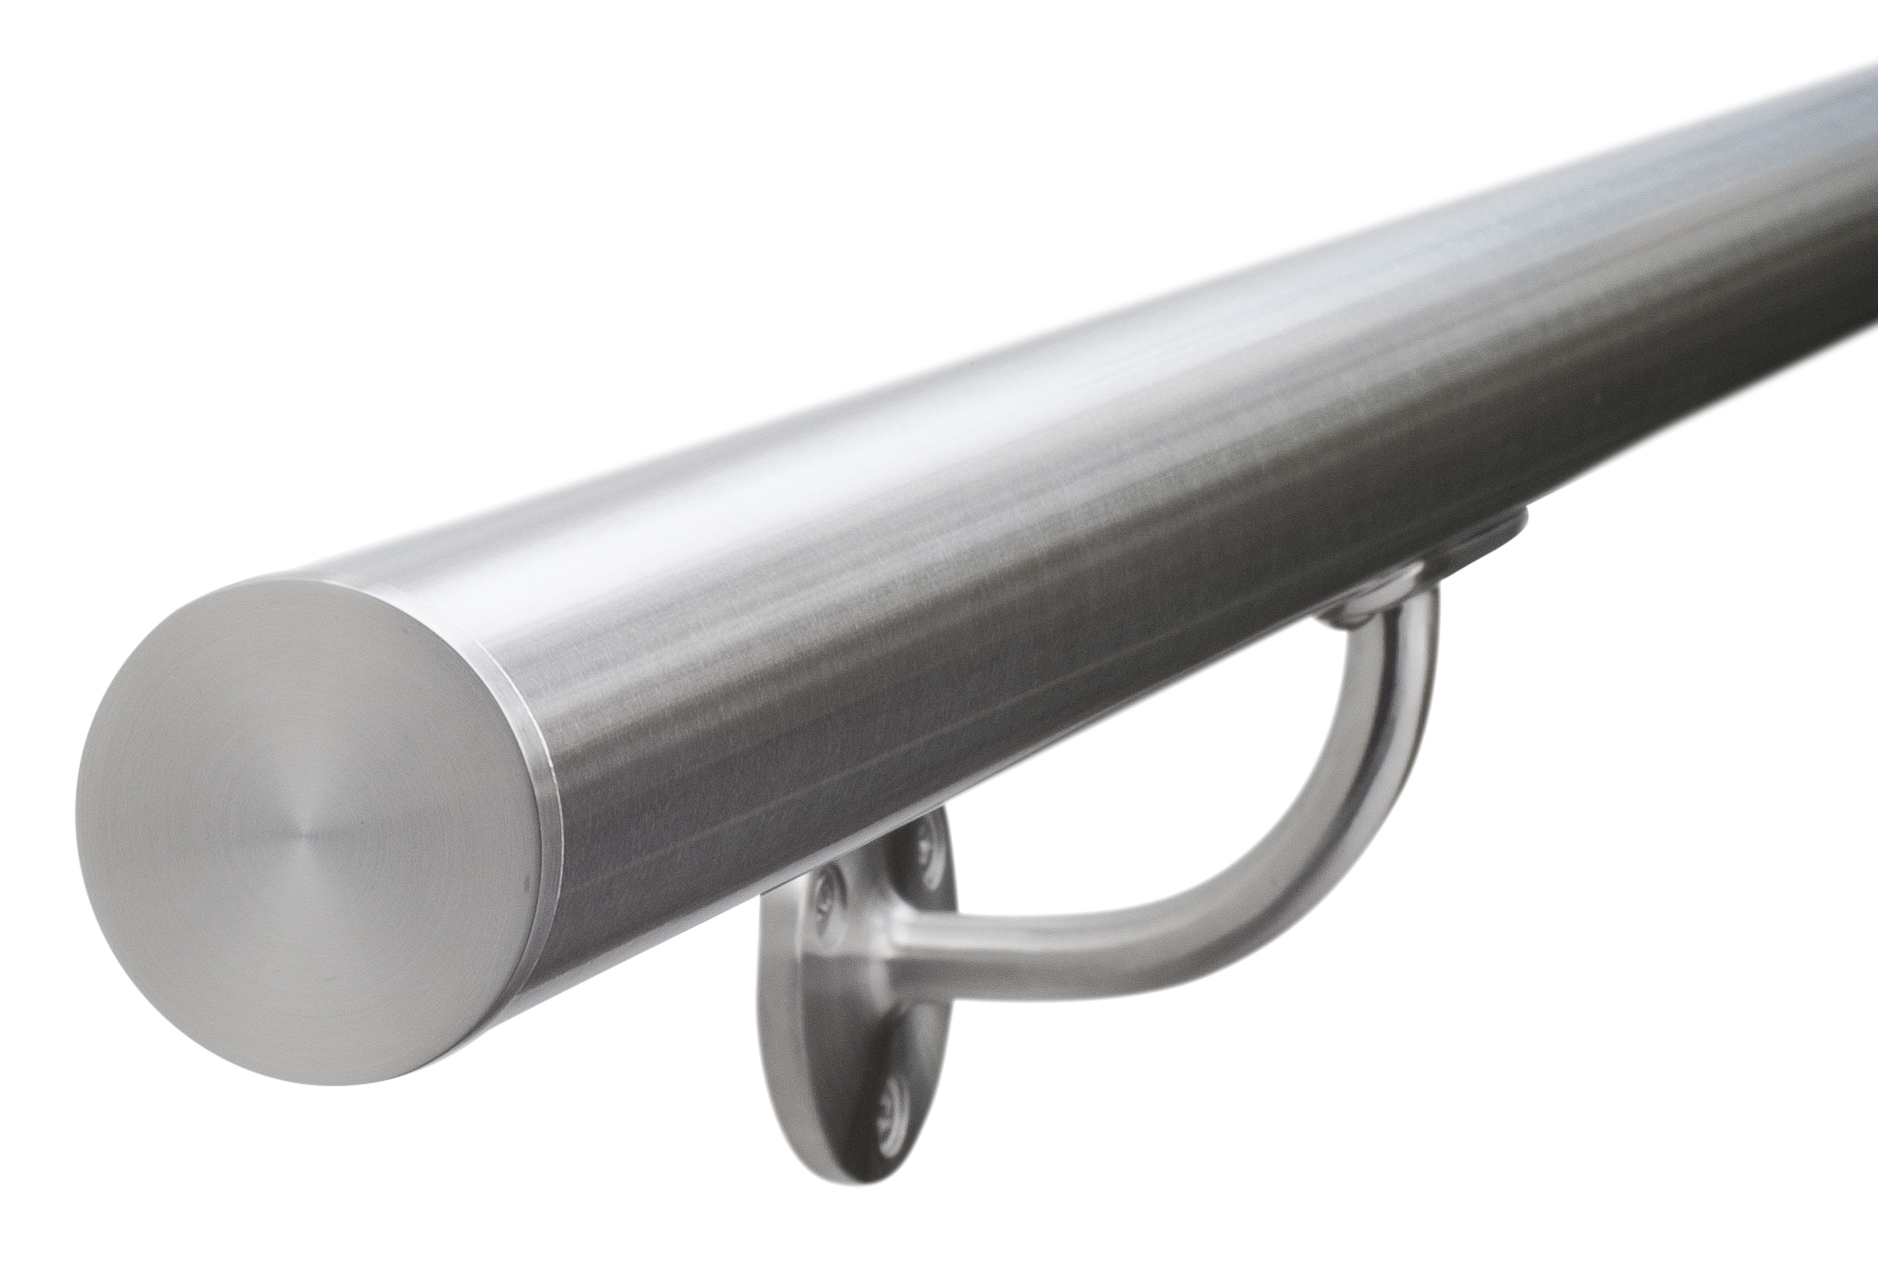 Brushed satin stainless steel stair handrail grit